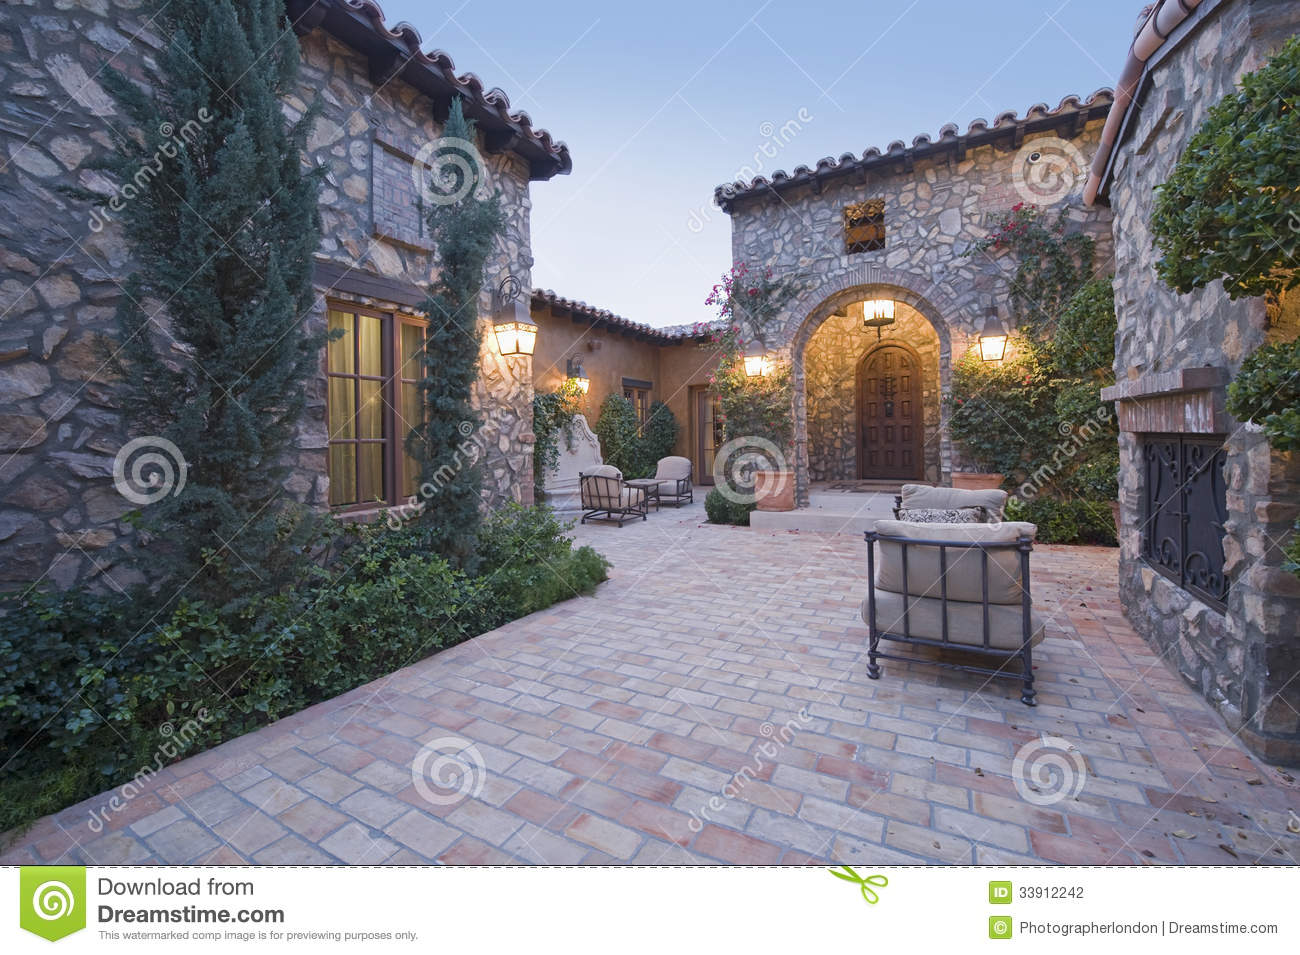 Houses With Chairs In Courtyard Stock Photo Image Of